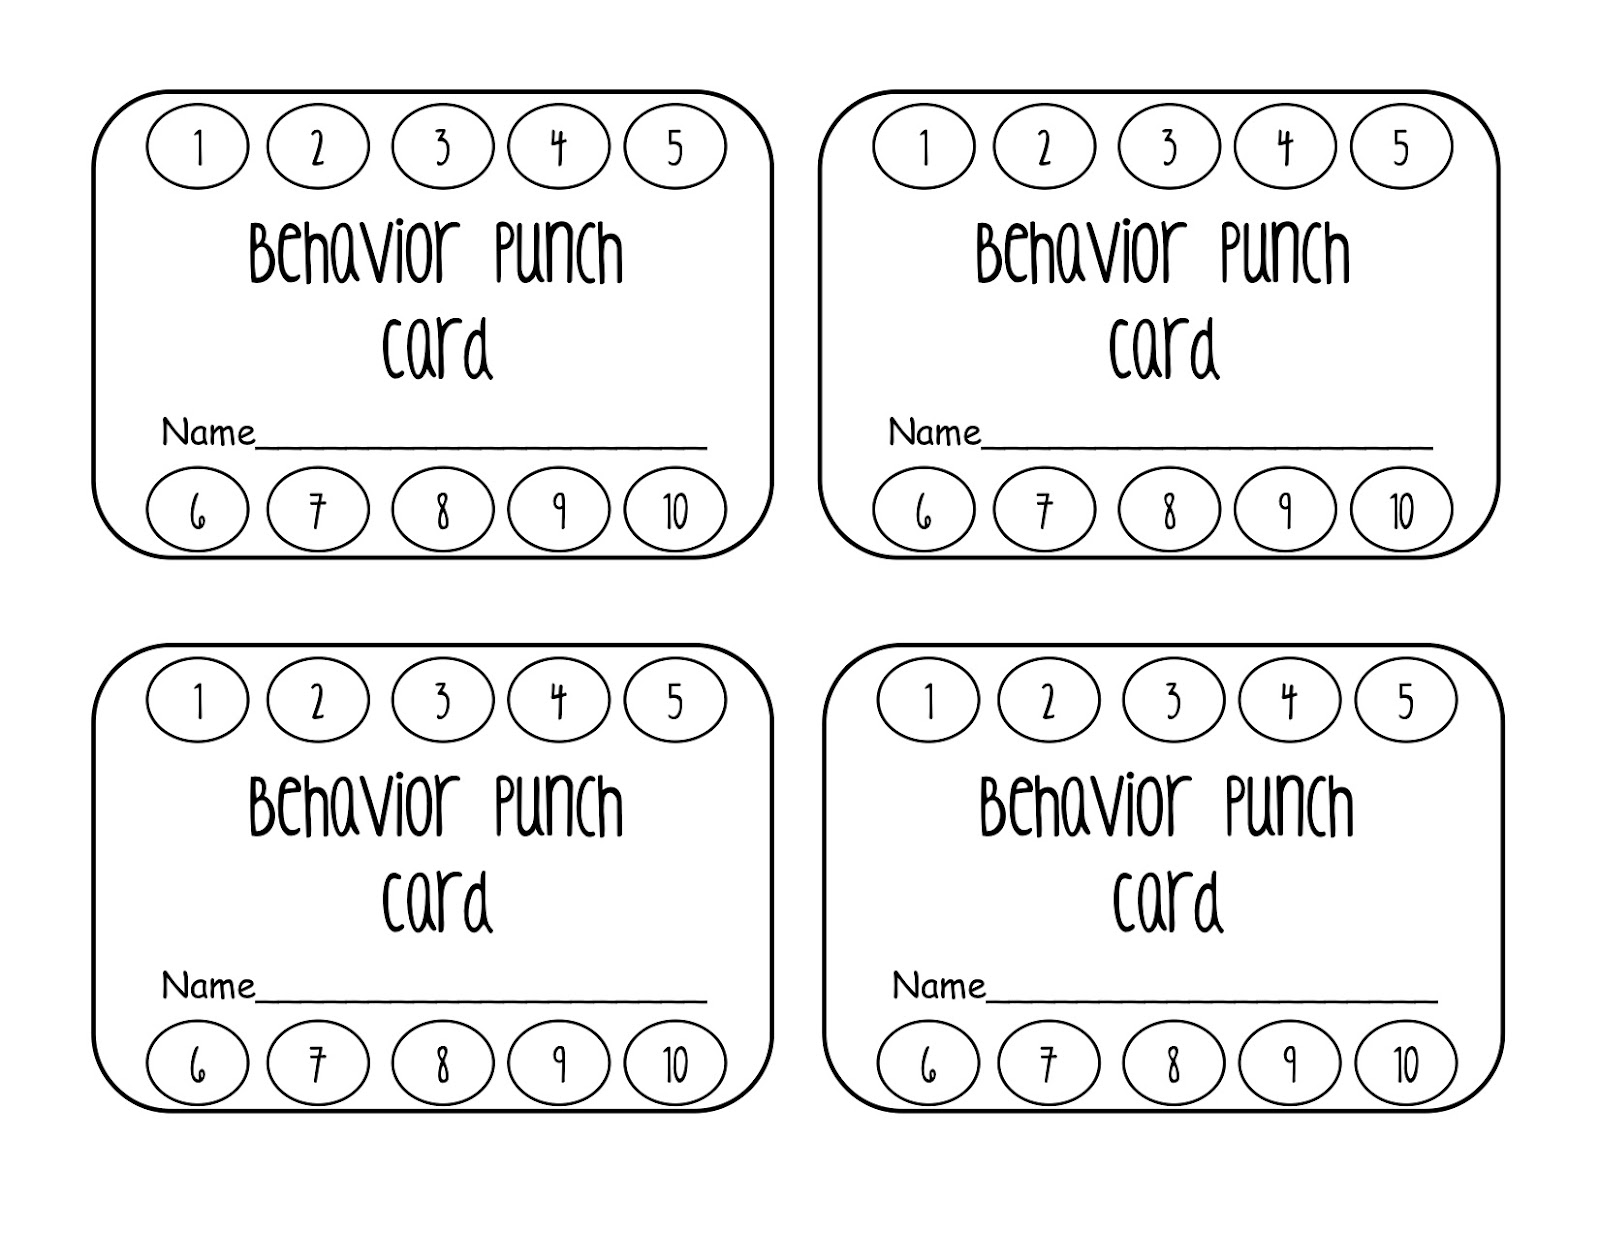 ... punch in their card i ve created two different punch cards to use